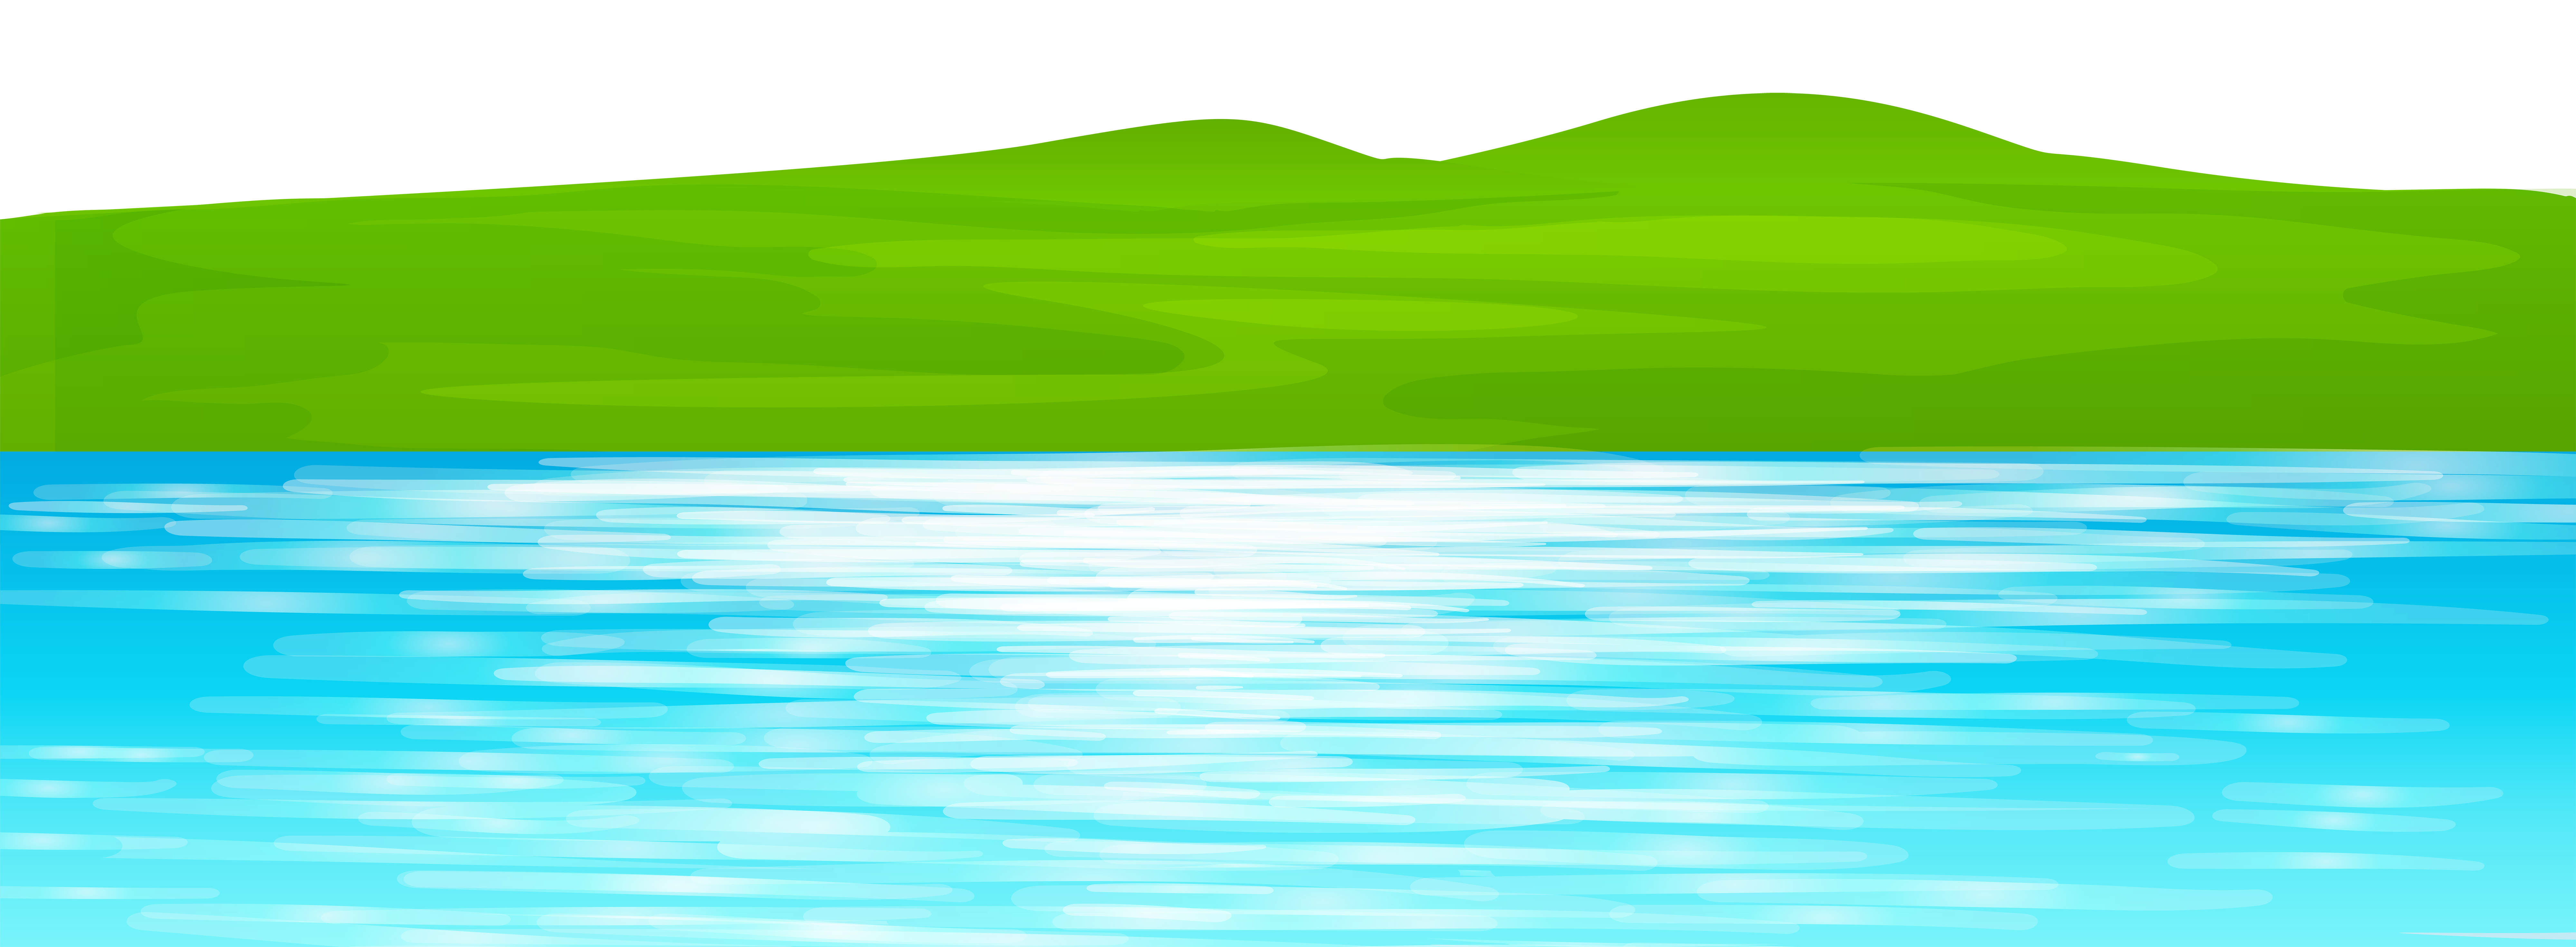 Ground clipart sky. Water resources green swimming